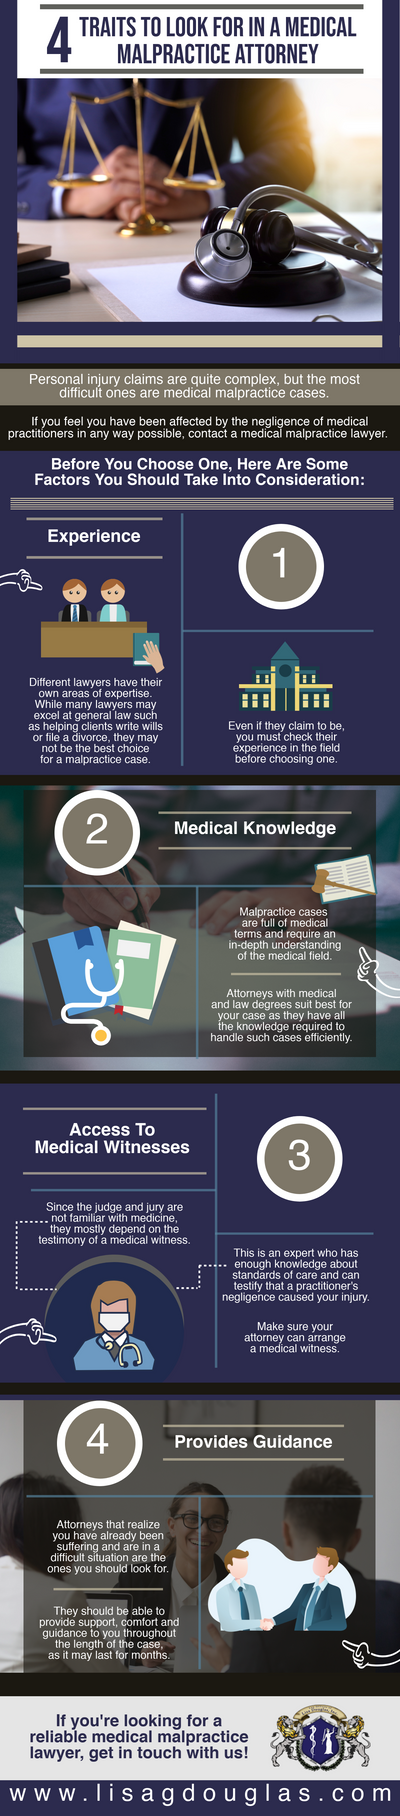 4 Traits To Look For In A Medical Malpractice Attorney